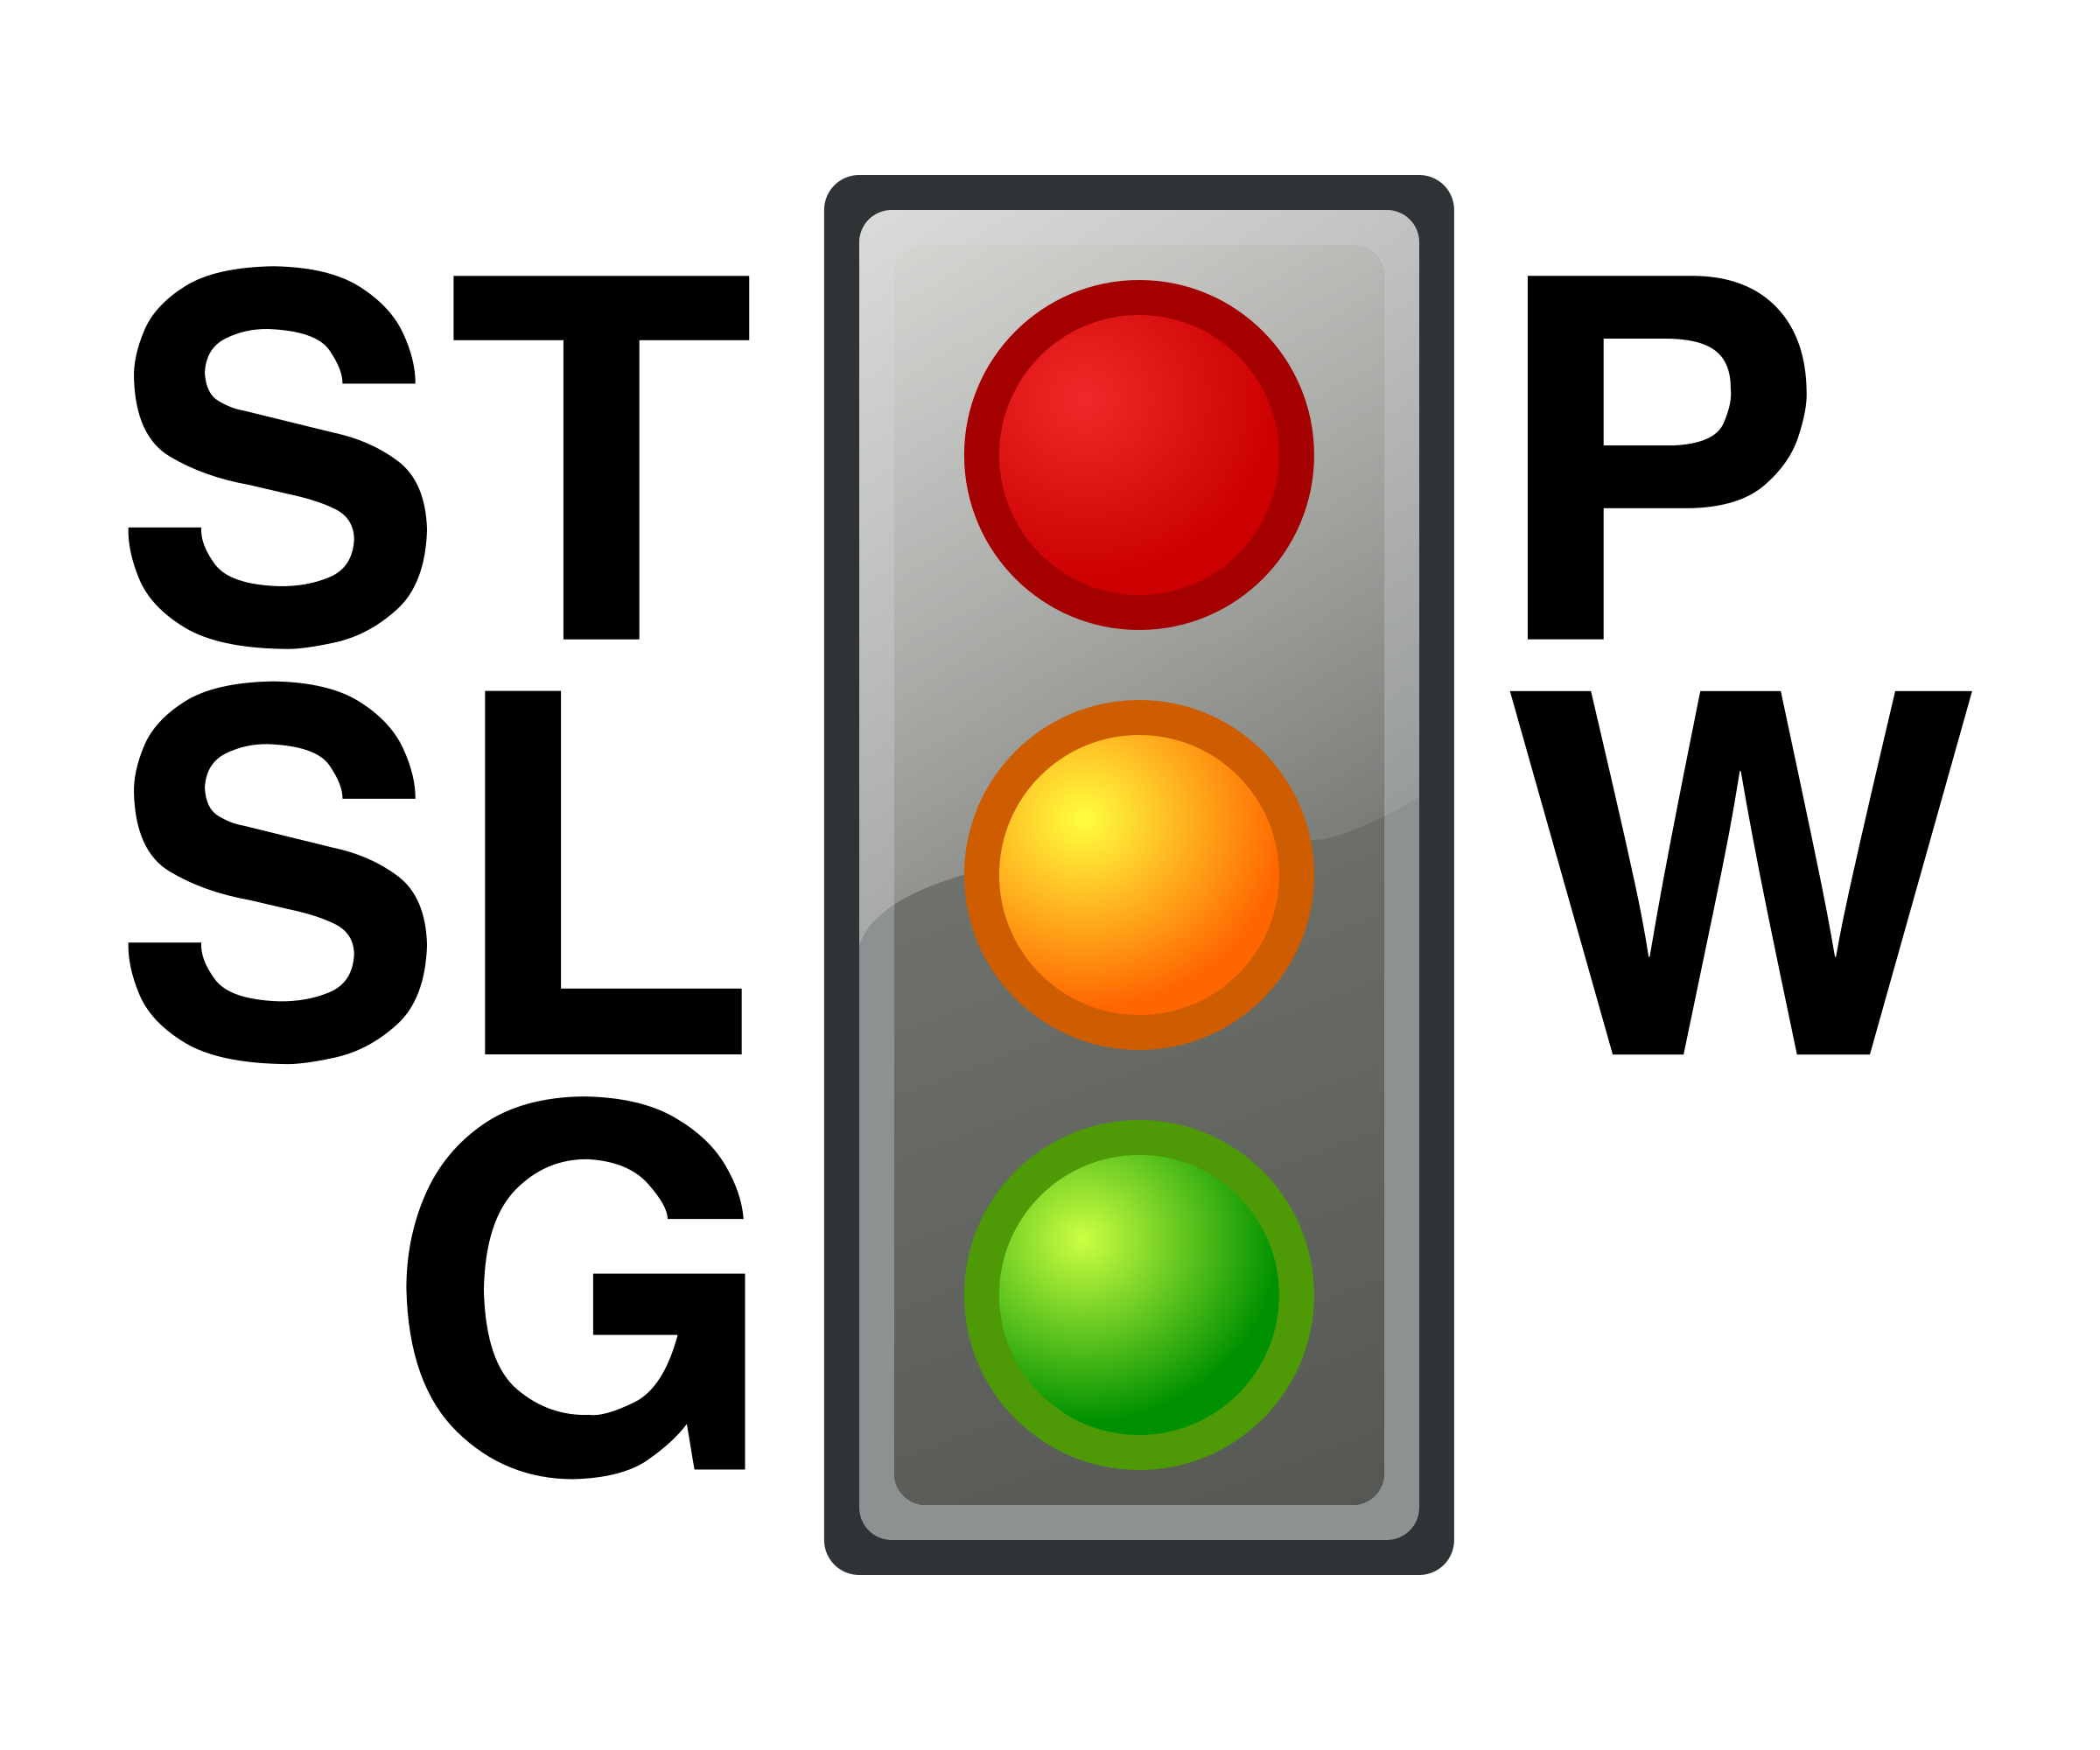 2400x2000 Stop Light Clipart Meaning Of The Traffic Lights Image